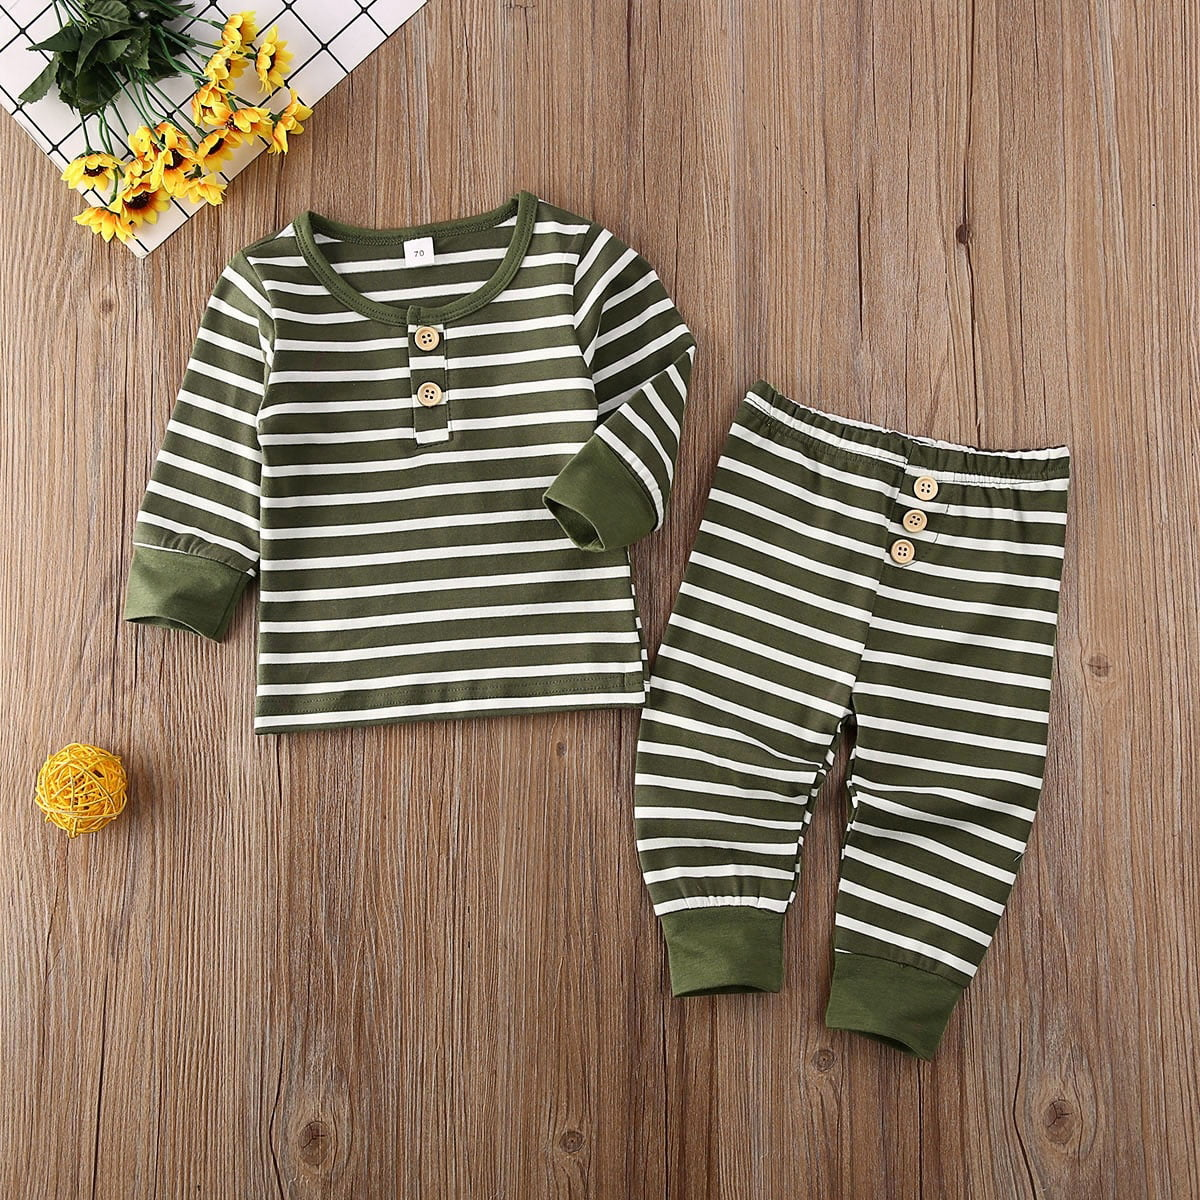 Toddler Baby Kids Boy Long Sleeve Tops Trousers Pants Casual Daily Wear Outfits